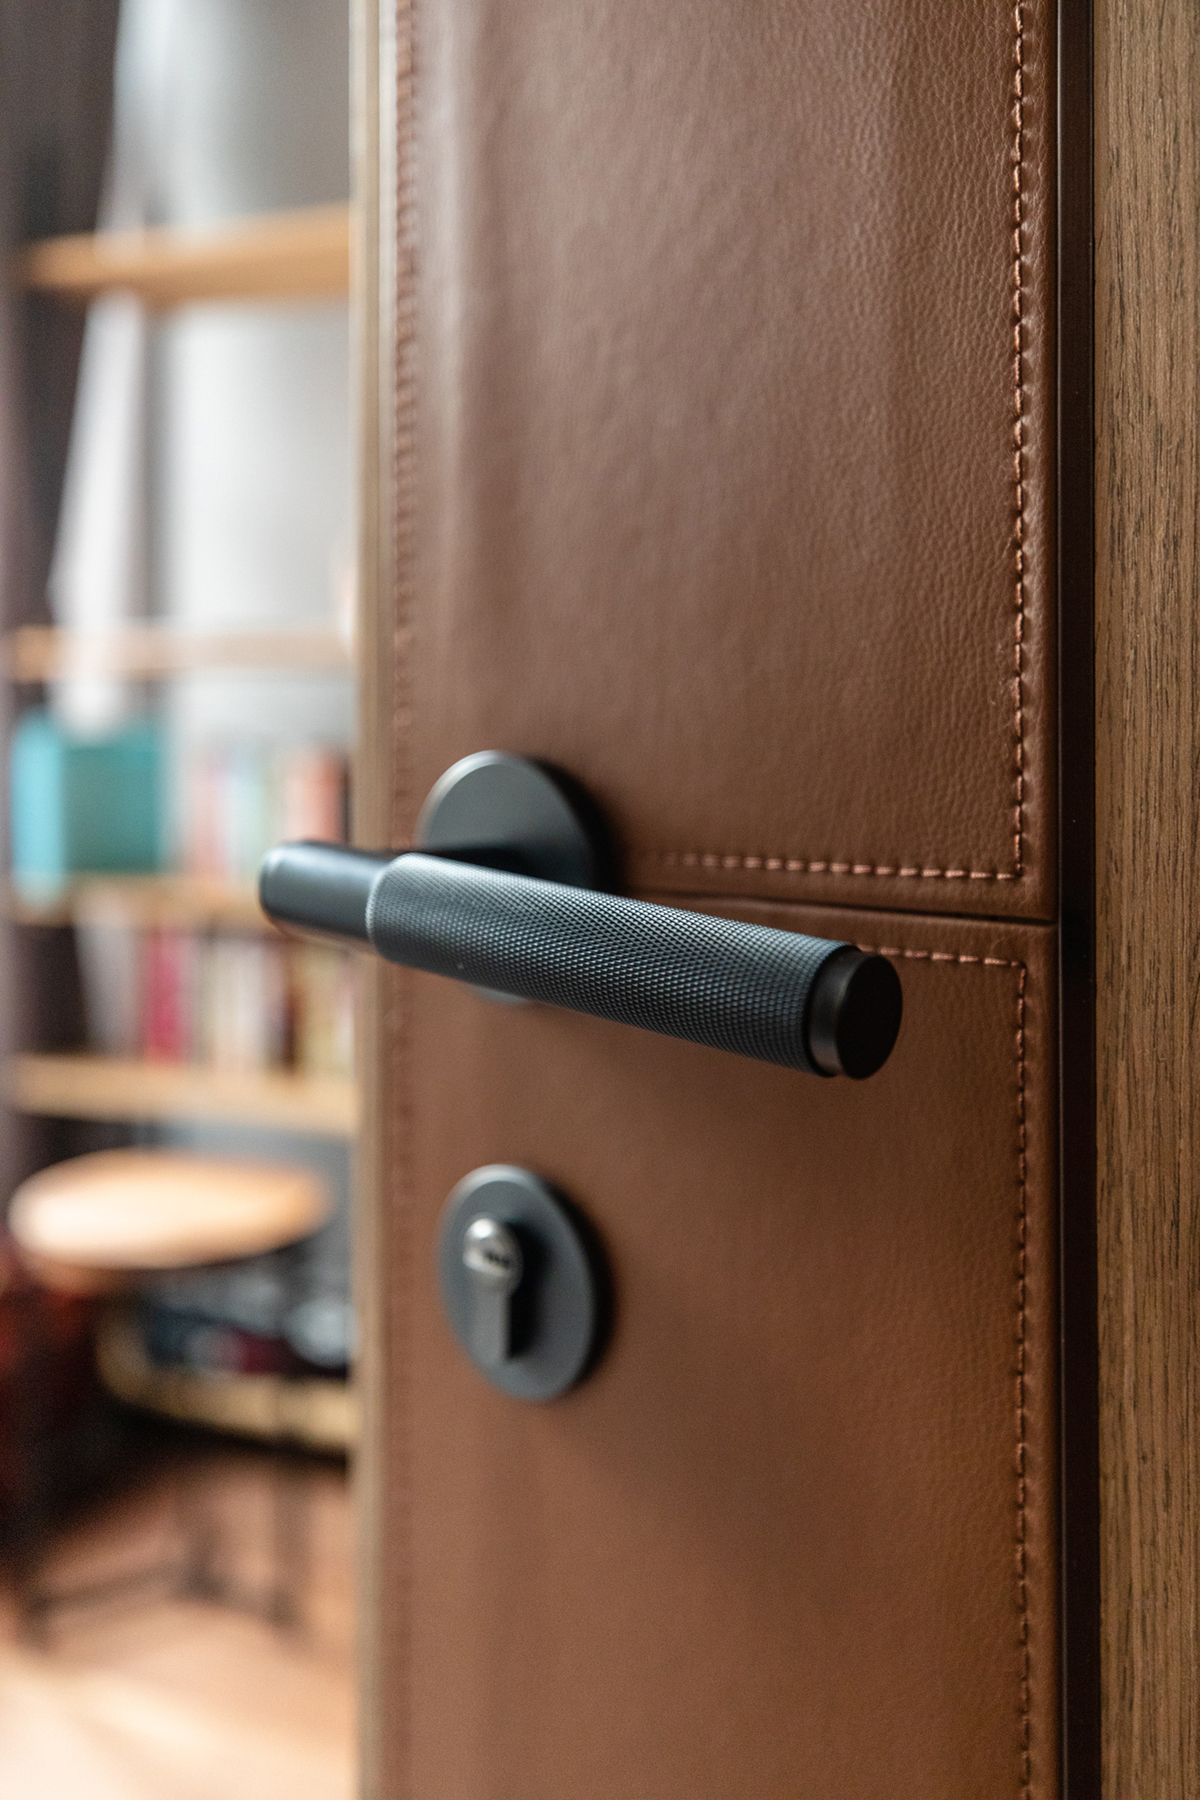 Interior design details - Leather door highlight